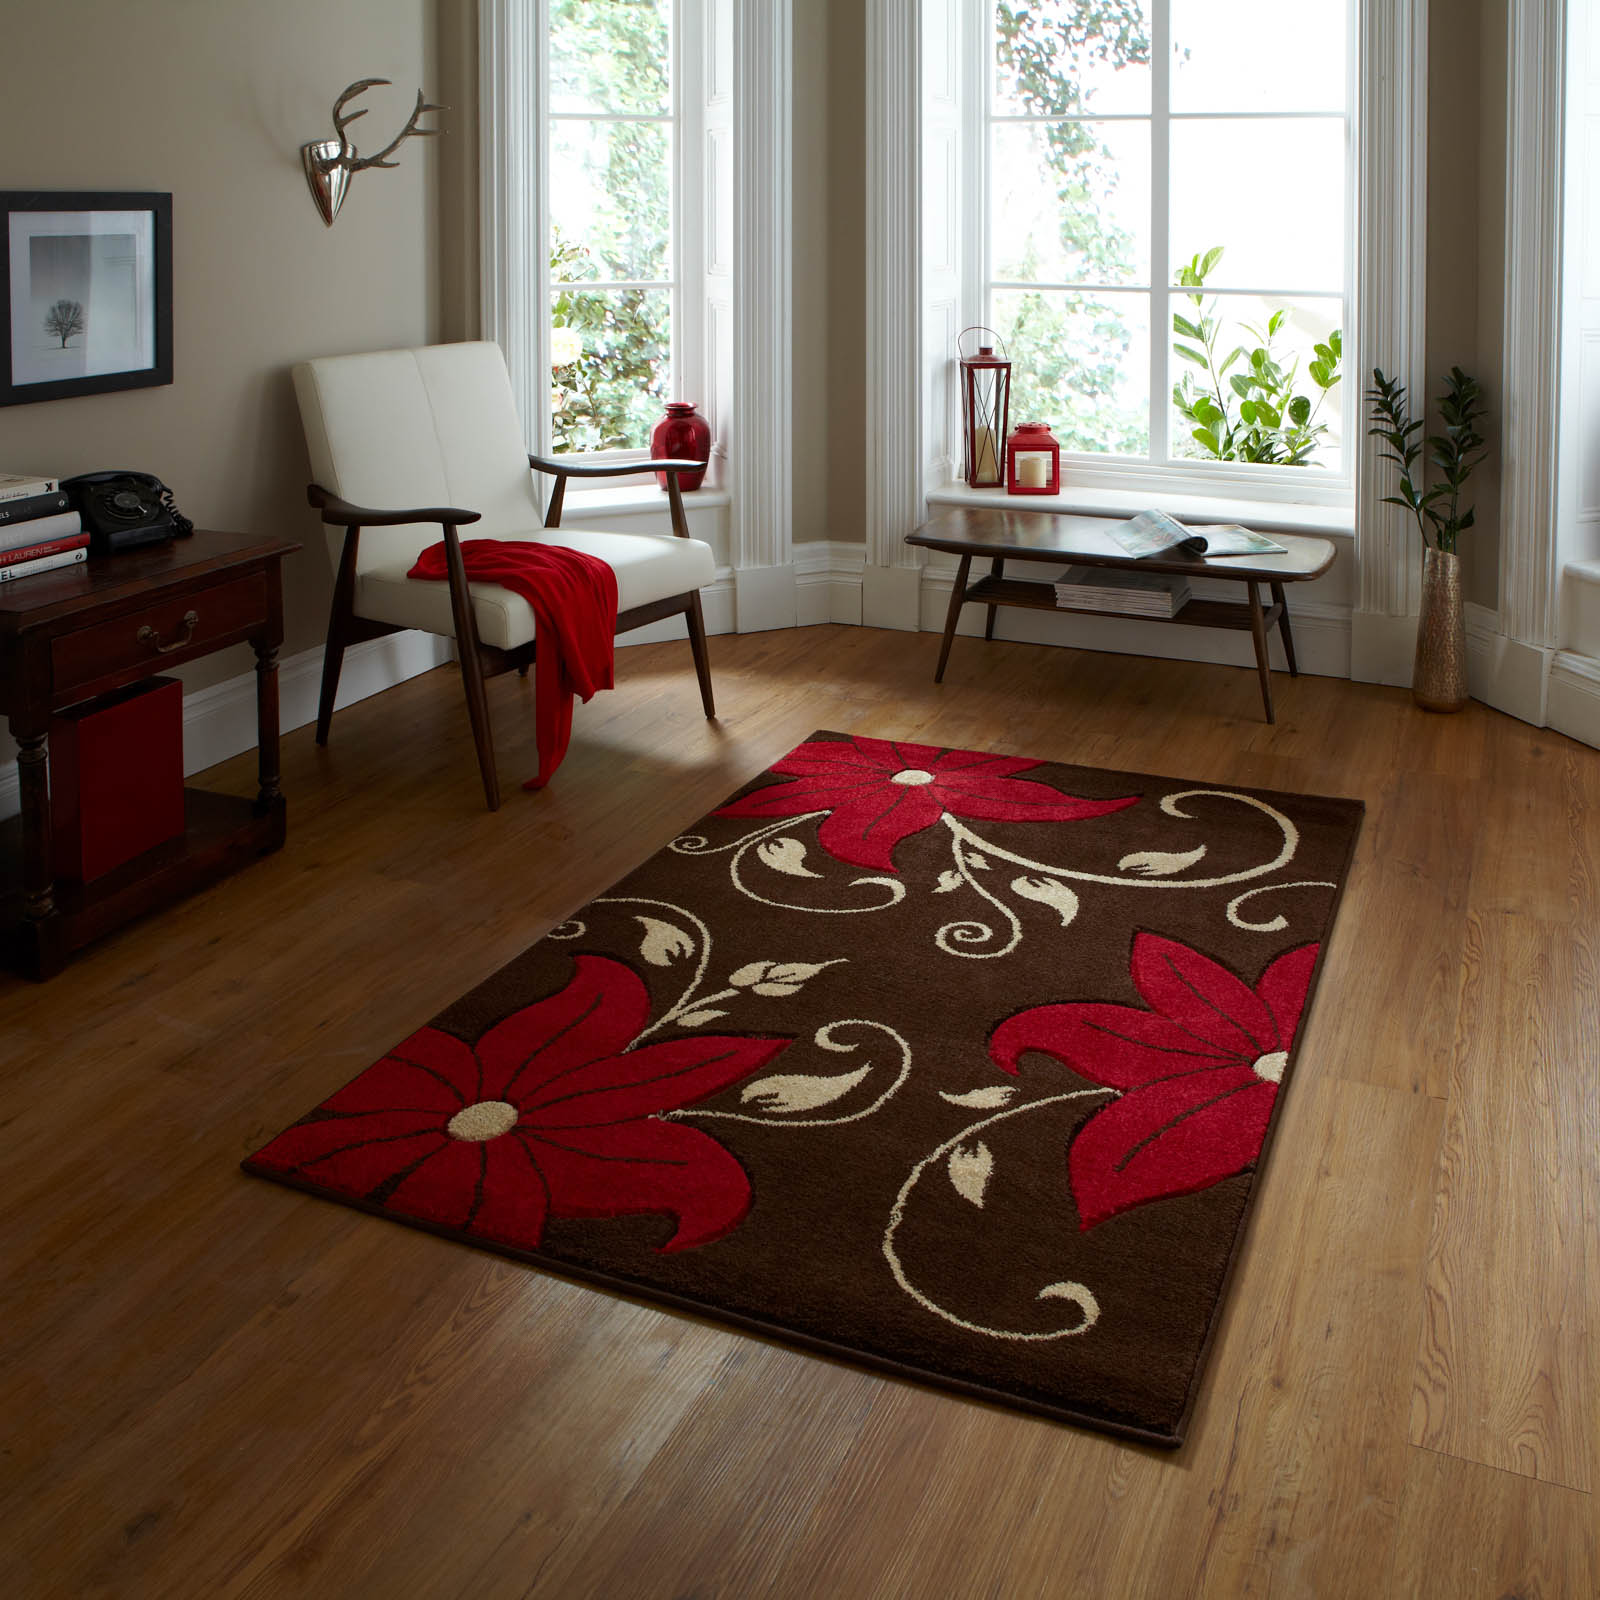 Verona OC15 Hand Carved Rugs in Brown Red